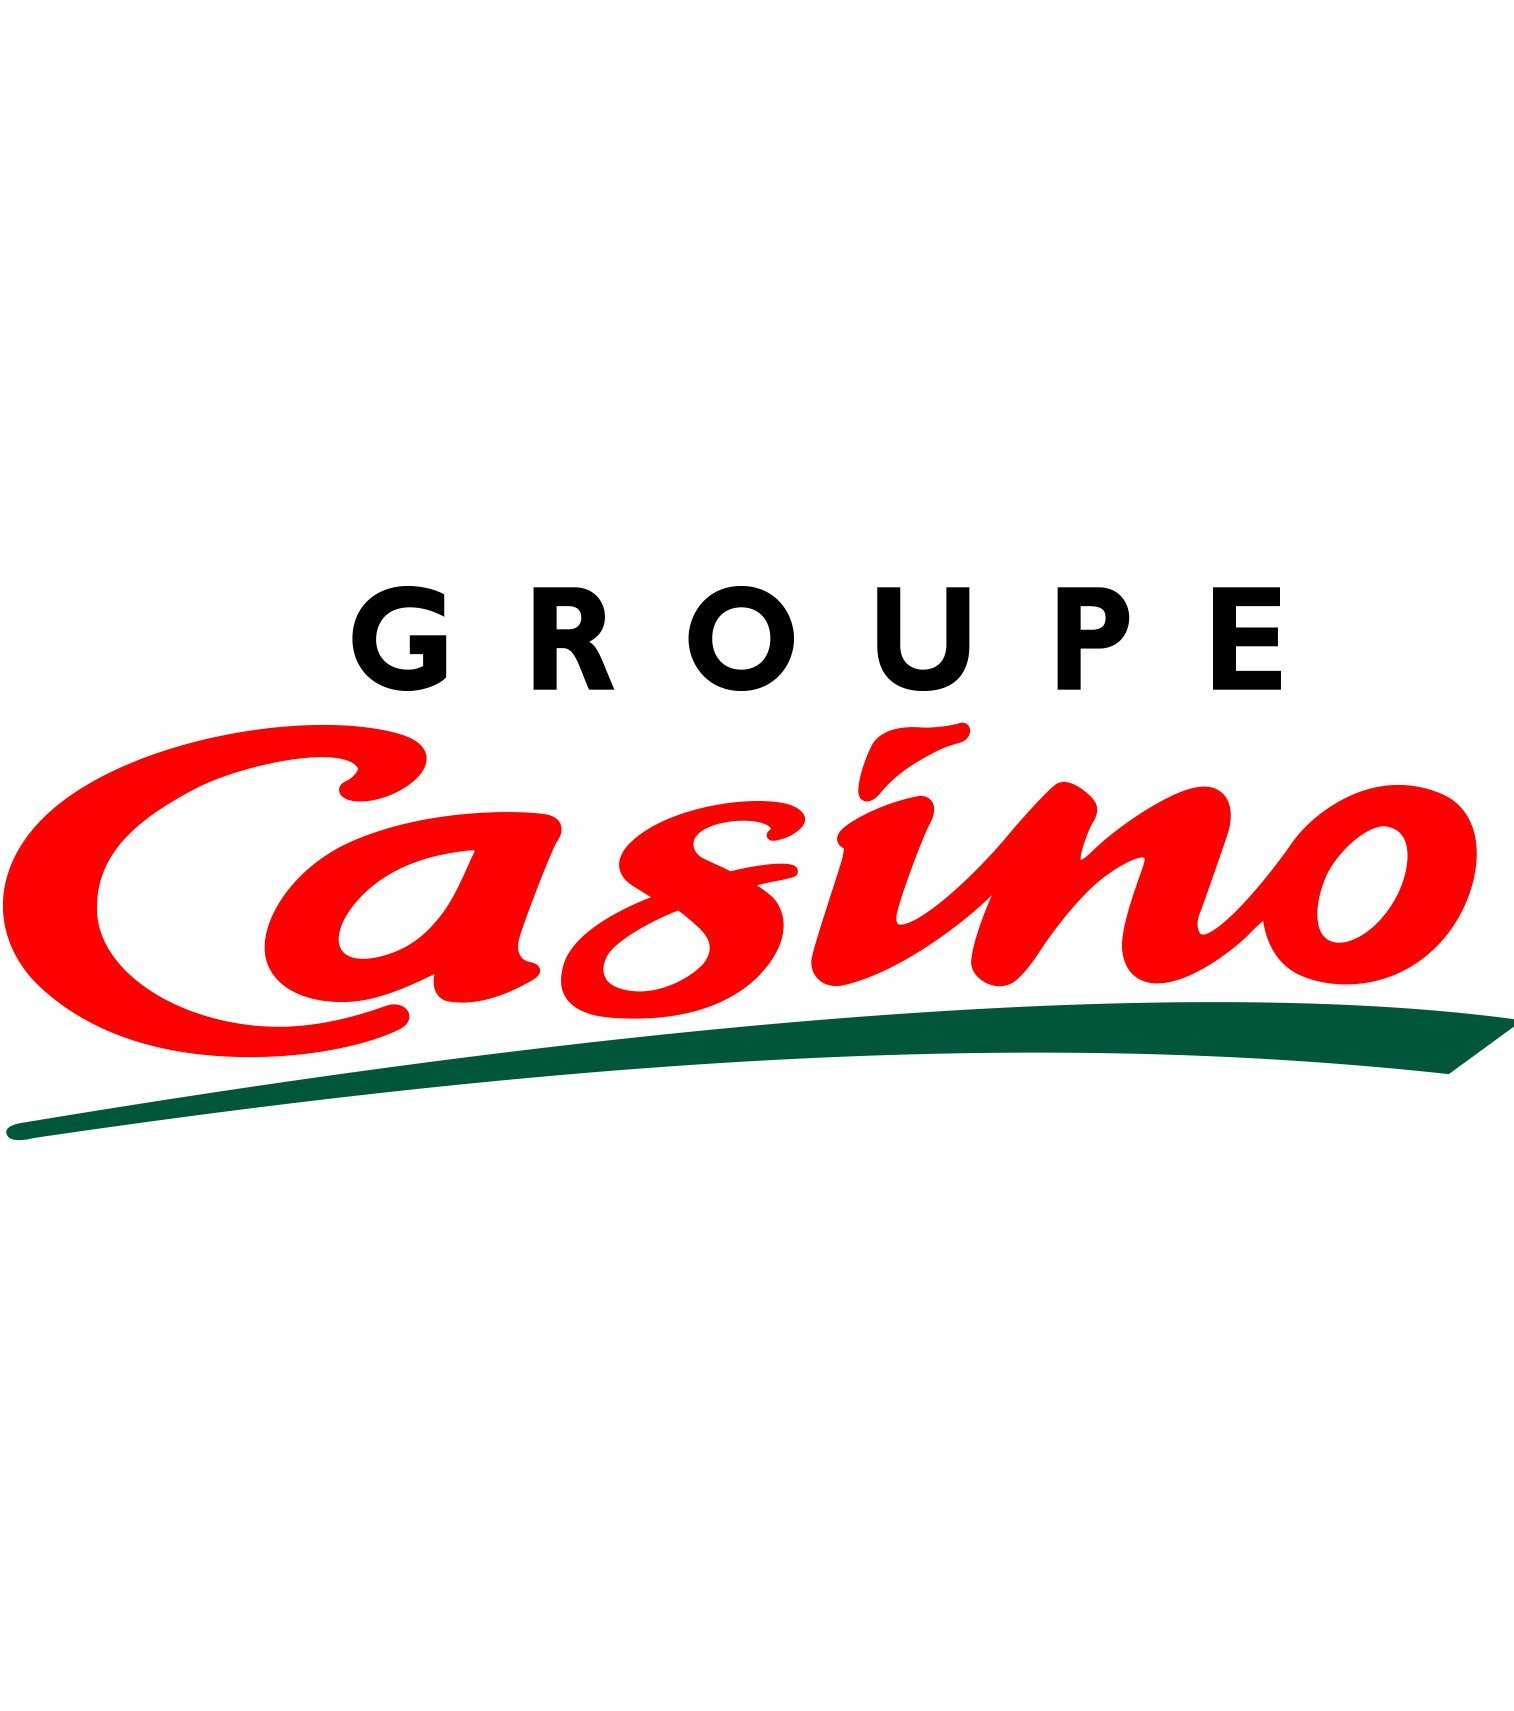 Groupe casino musique how to unlock iphone sim card slot